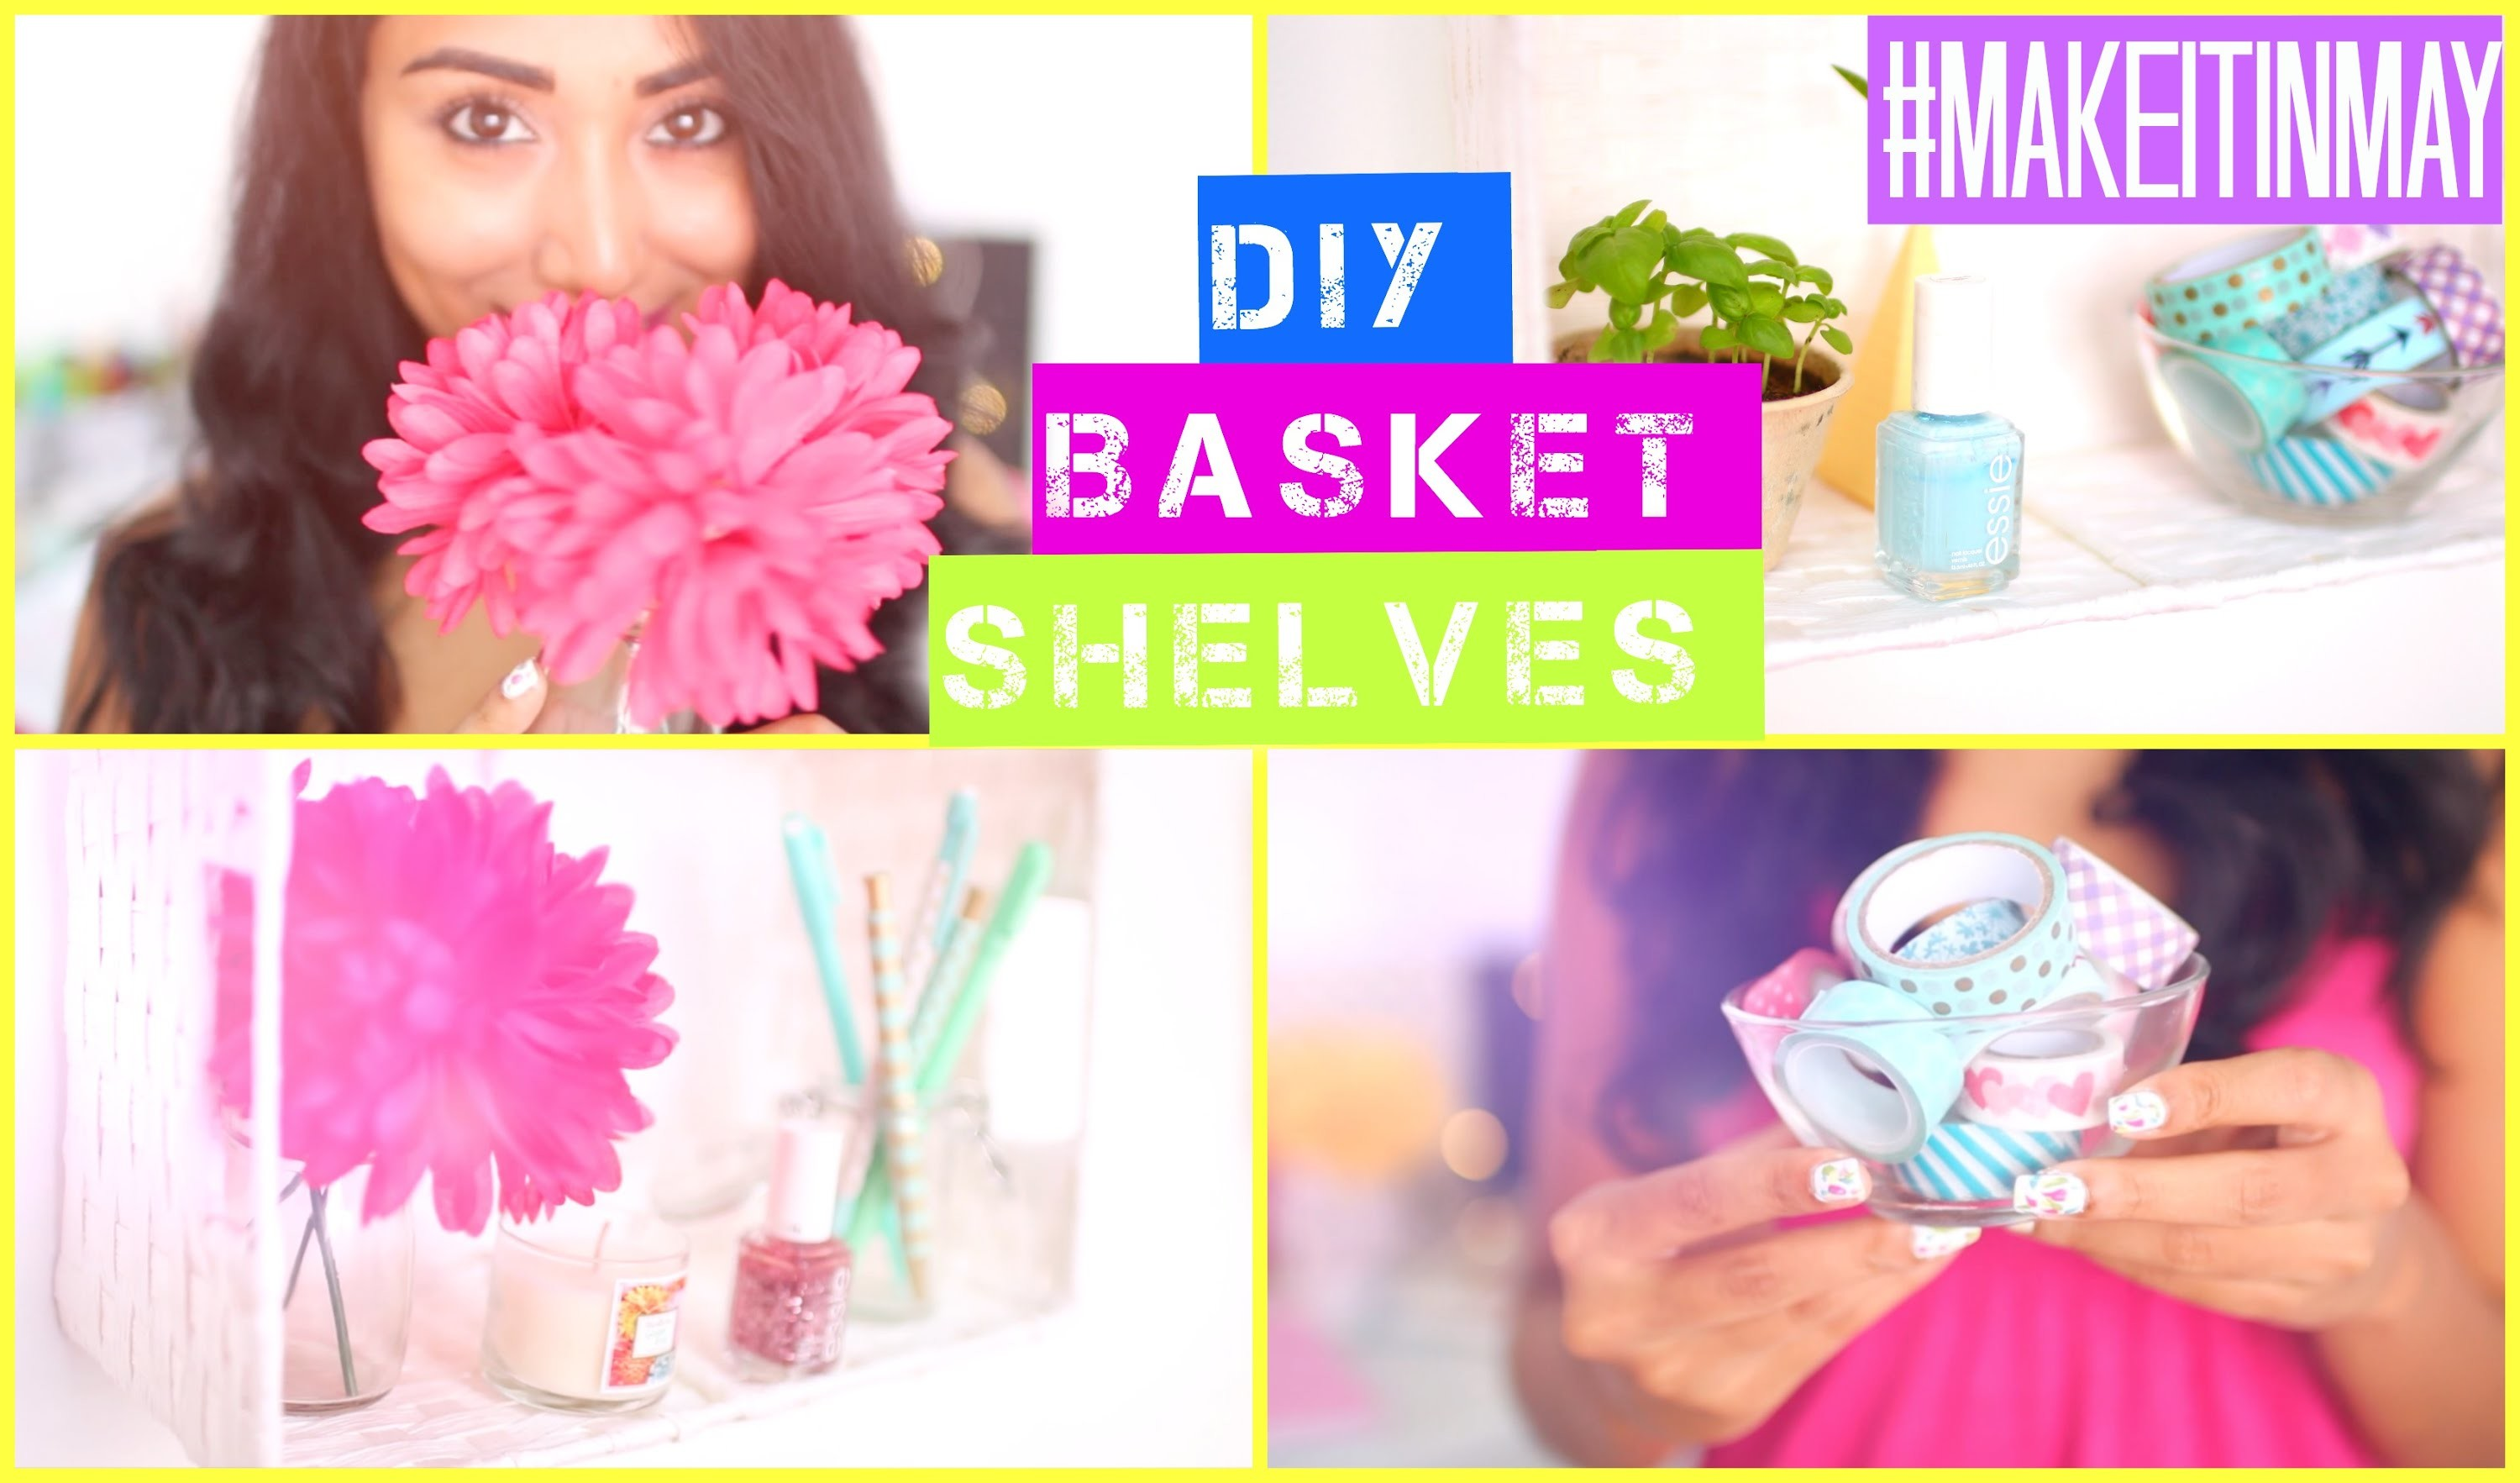 DIY Basket Shelves | #MAKEITINMAY 2015